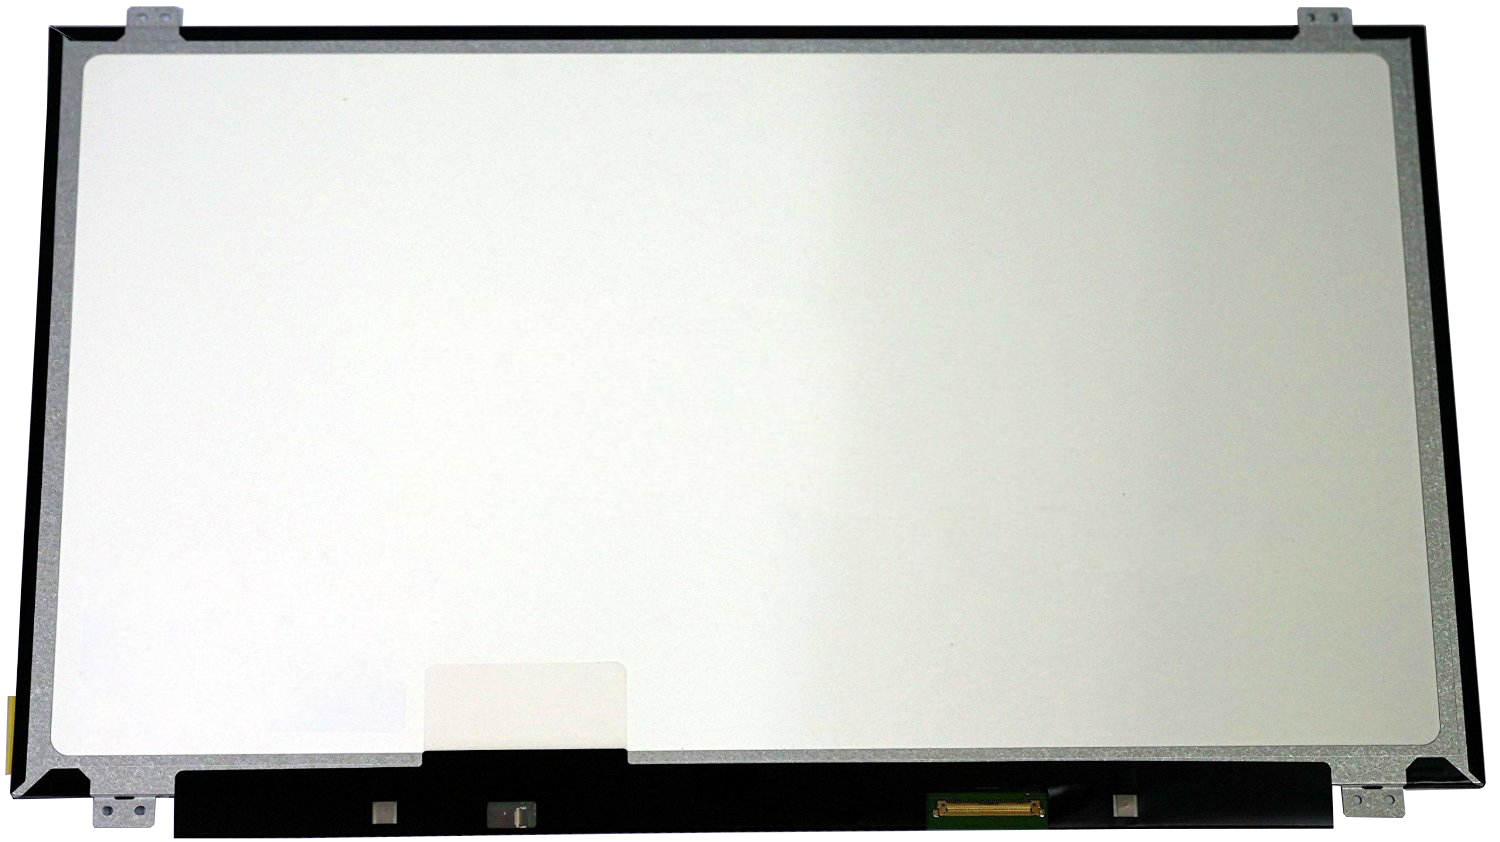 QuYing Laptop LCD Screen for ACER ASPIRE E1-510 E1-532G E1-572G E1-530G E5-551 E5-551G E5-571 SERIES (15.6 inch 1366x768 30pin) quying laptop lcd screen for acer aspire ethos 5951g timeline 5745 7531 series 15 6 inch 1366x768 40pin n